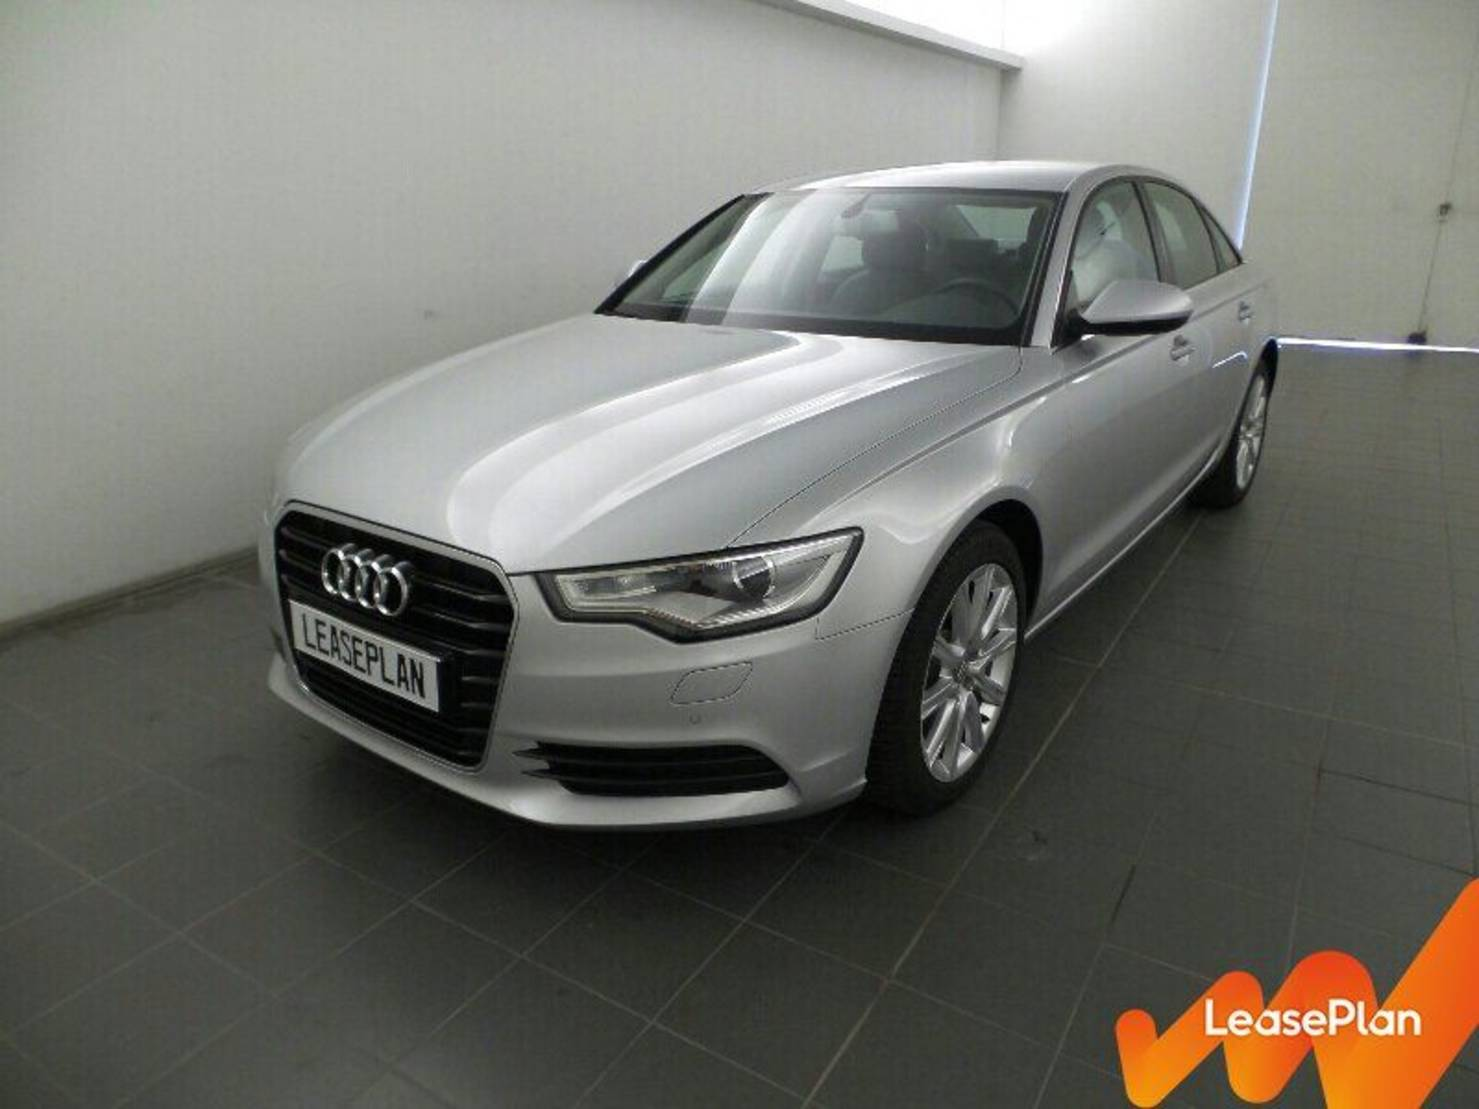 Audi A6 2.0 TDI DPF ultra 190, Ambition Luxe S Tronic A detail2